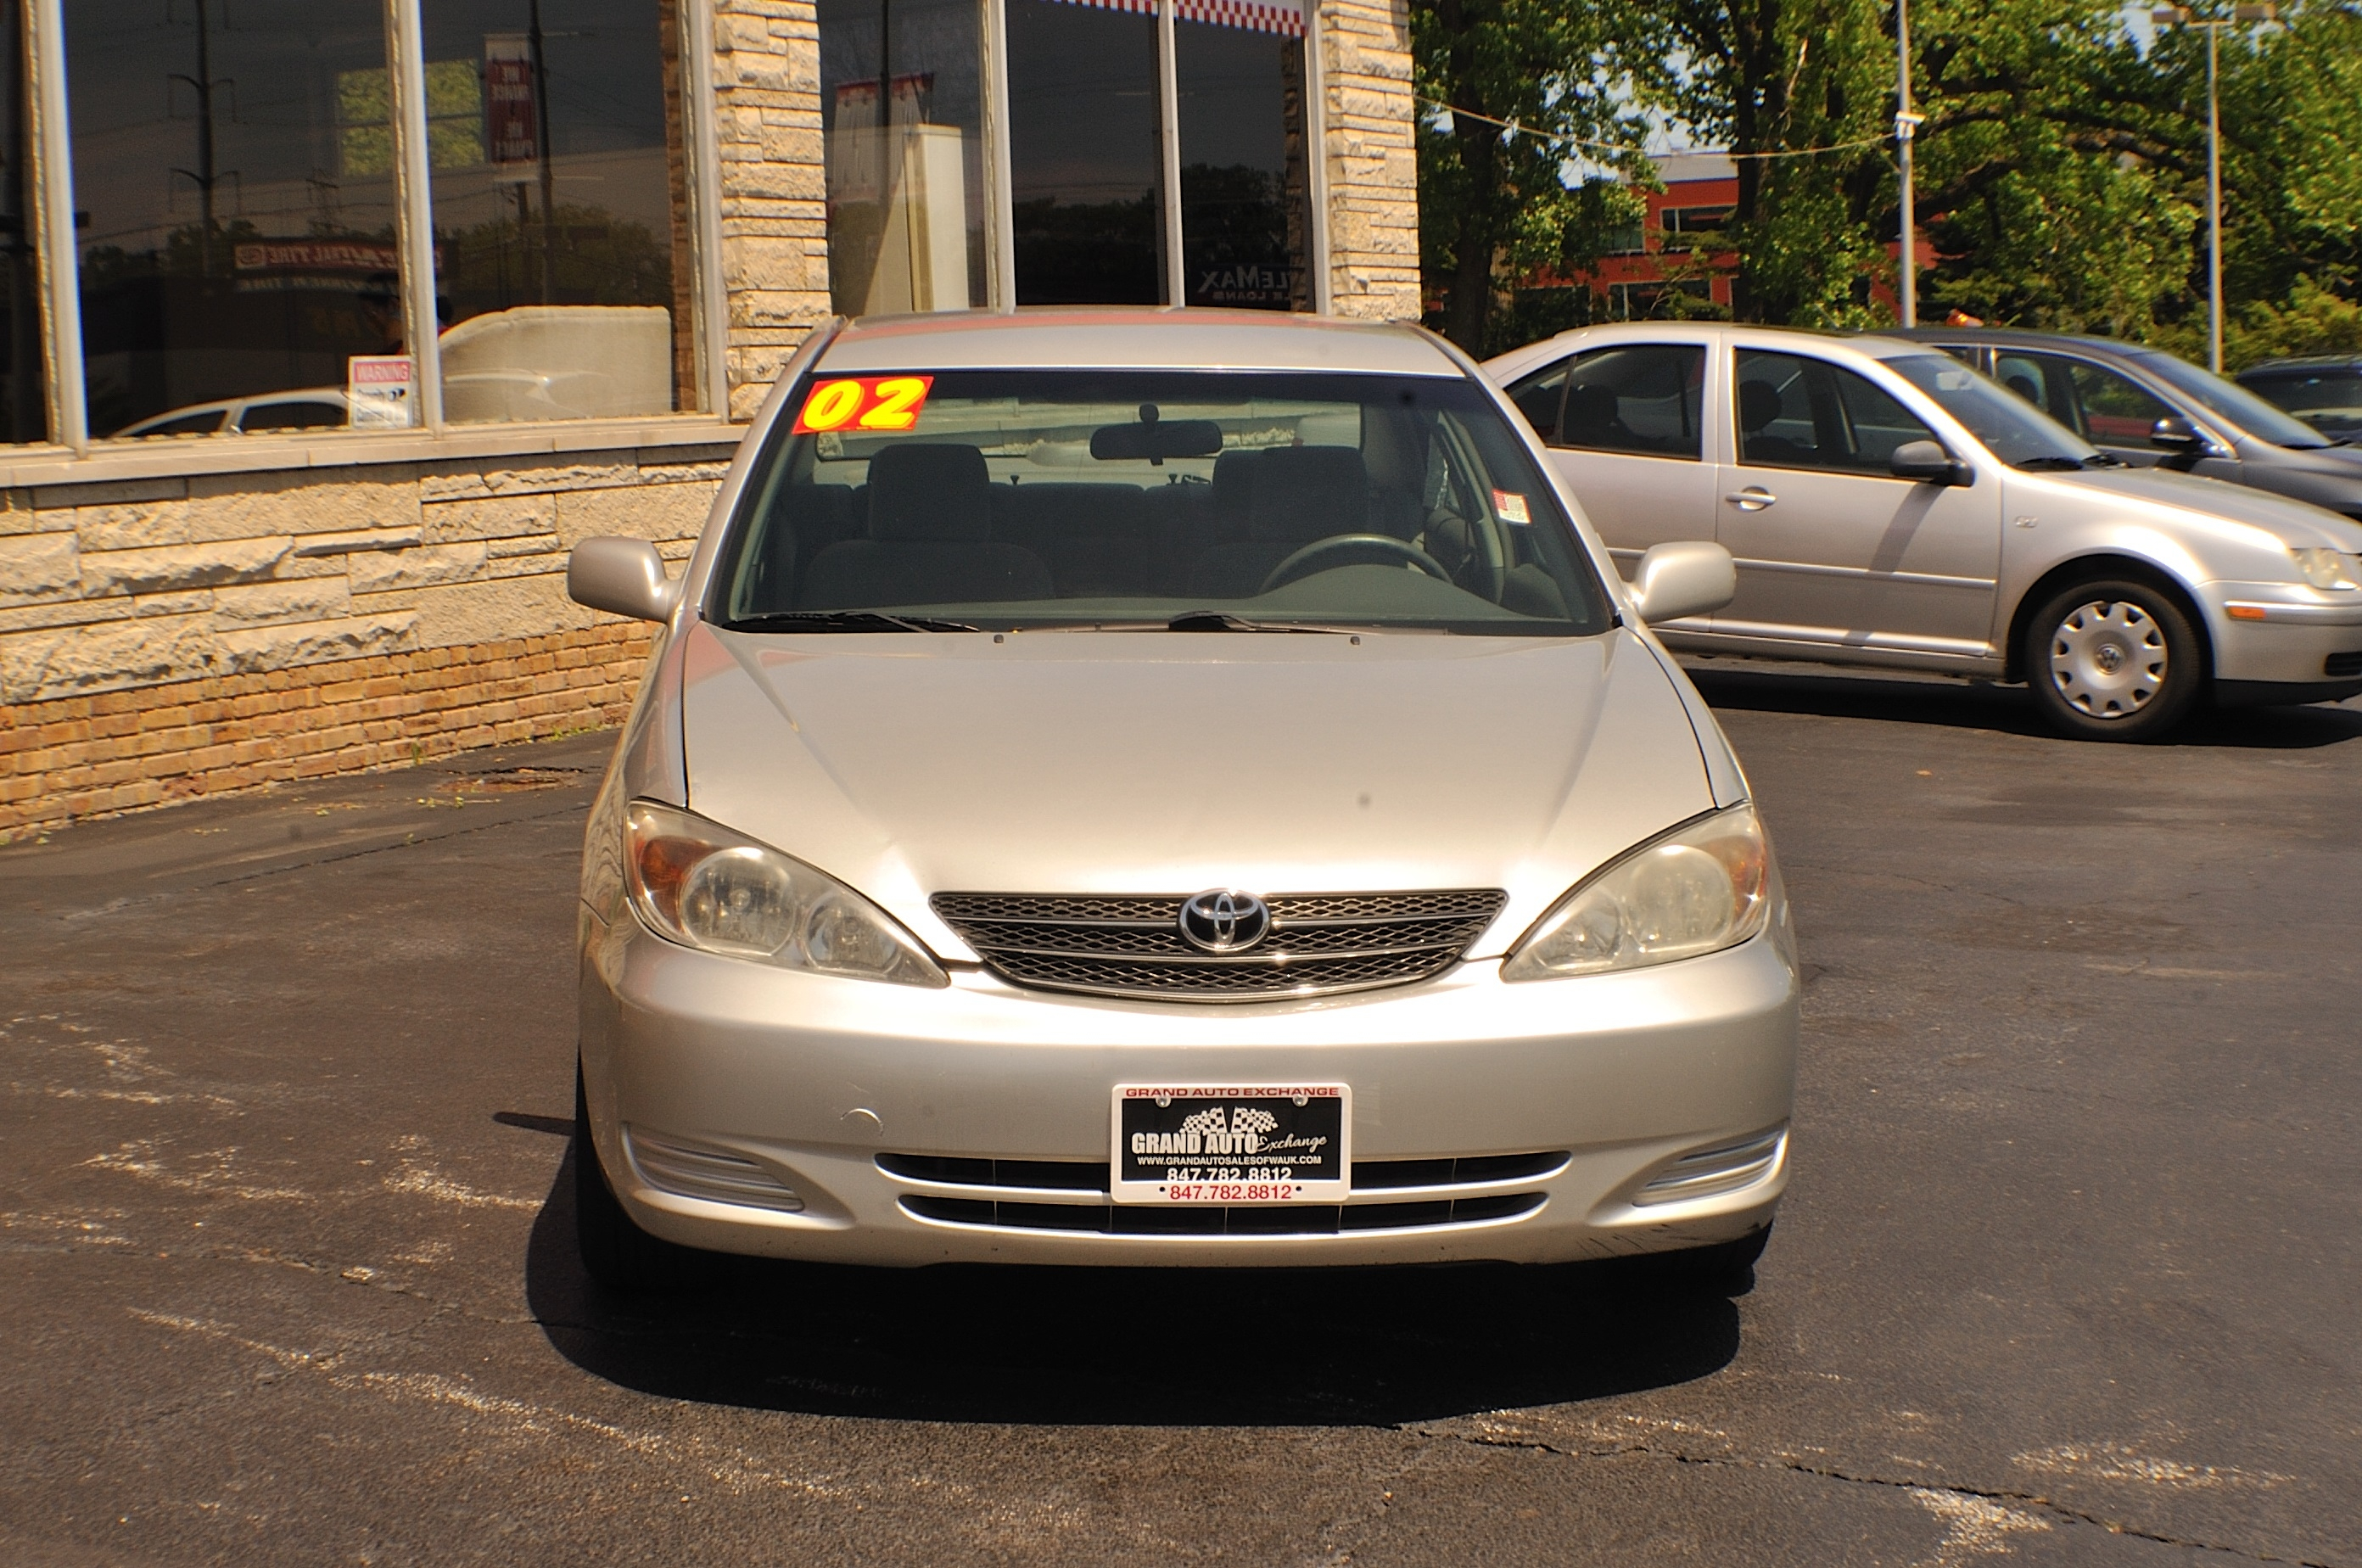 2002 Toyota Camry LE Silver Sedan Used Car Sale Gurnee Kenosha Mchenry Chicago Illinois